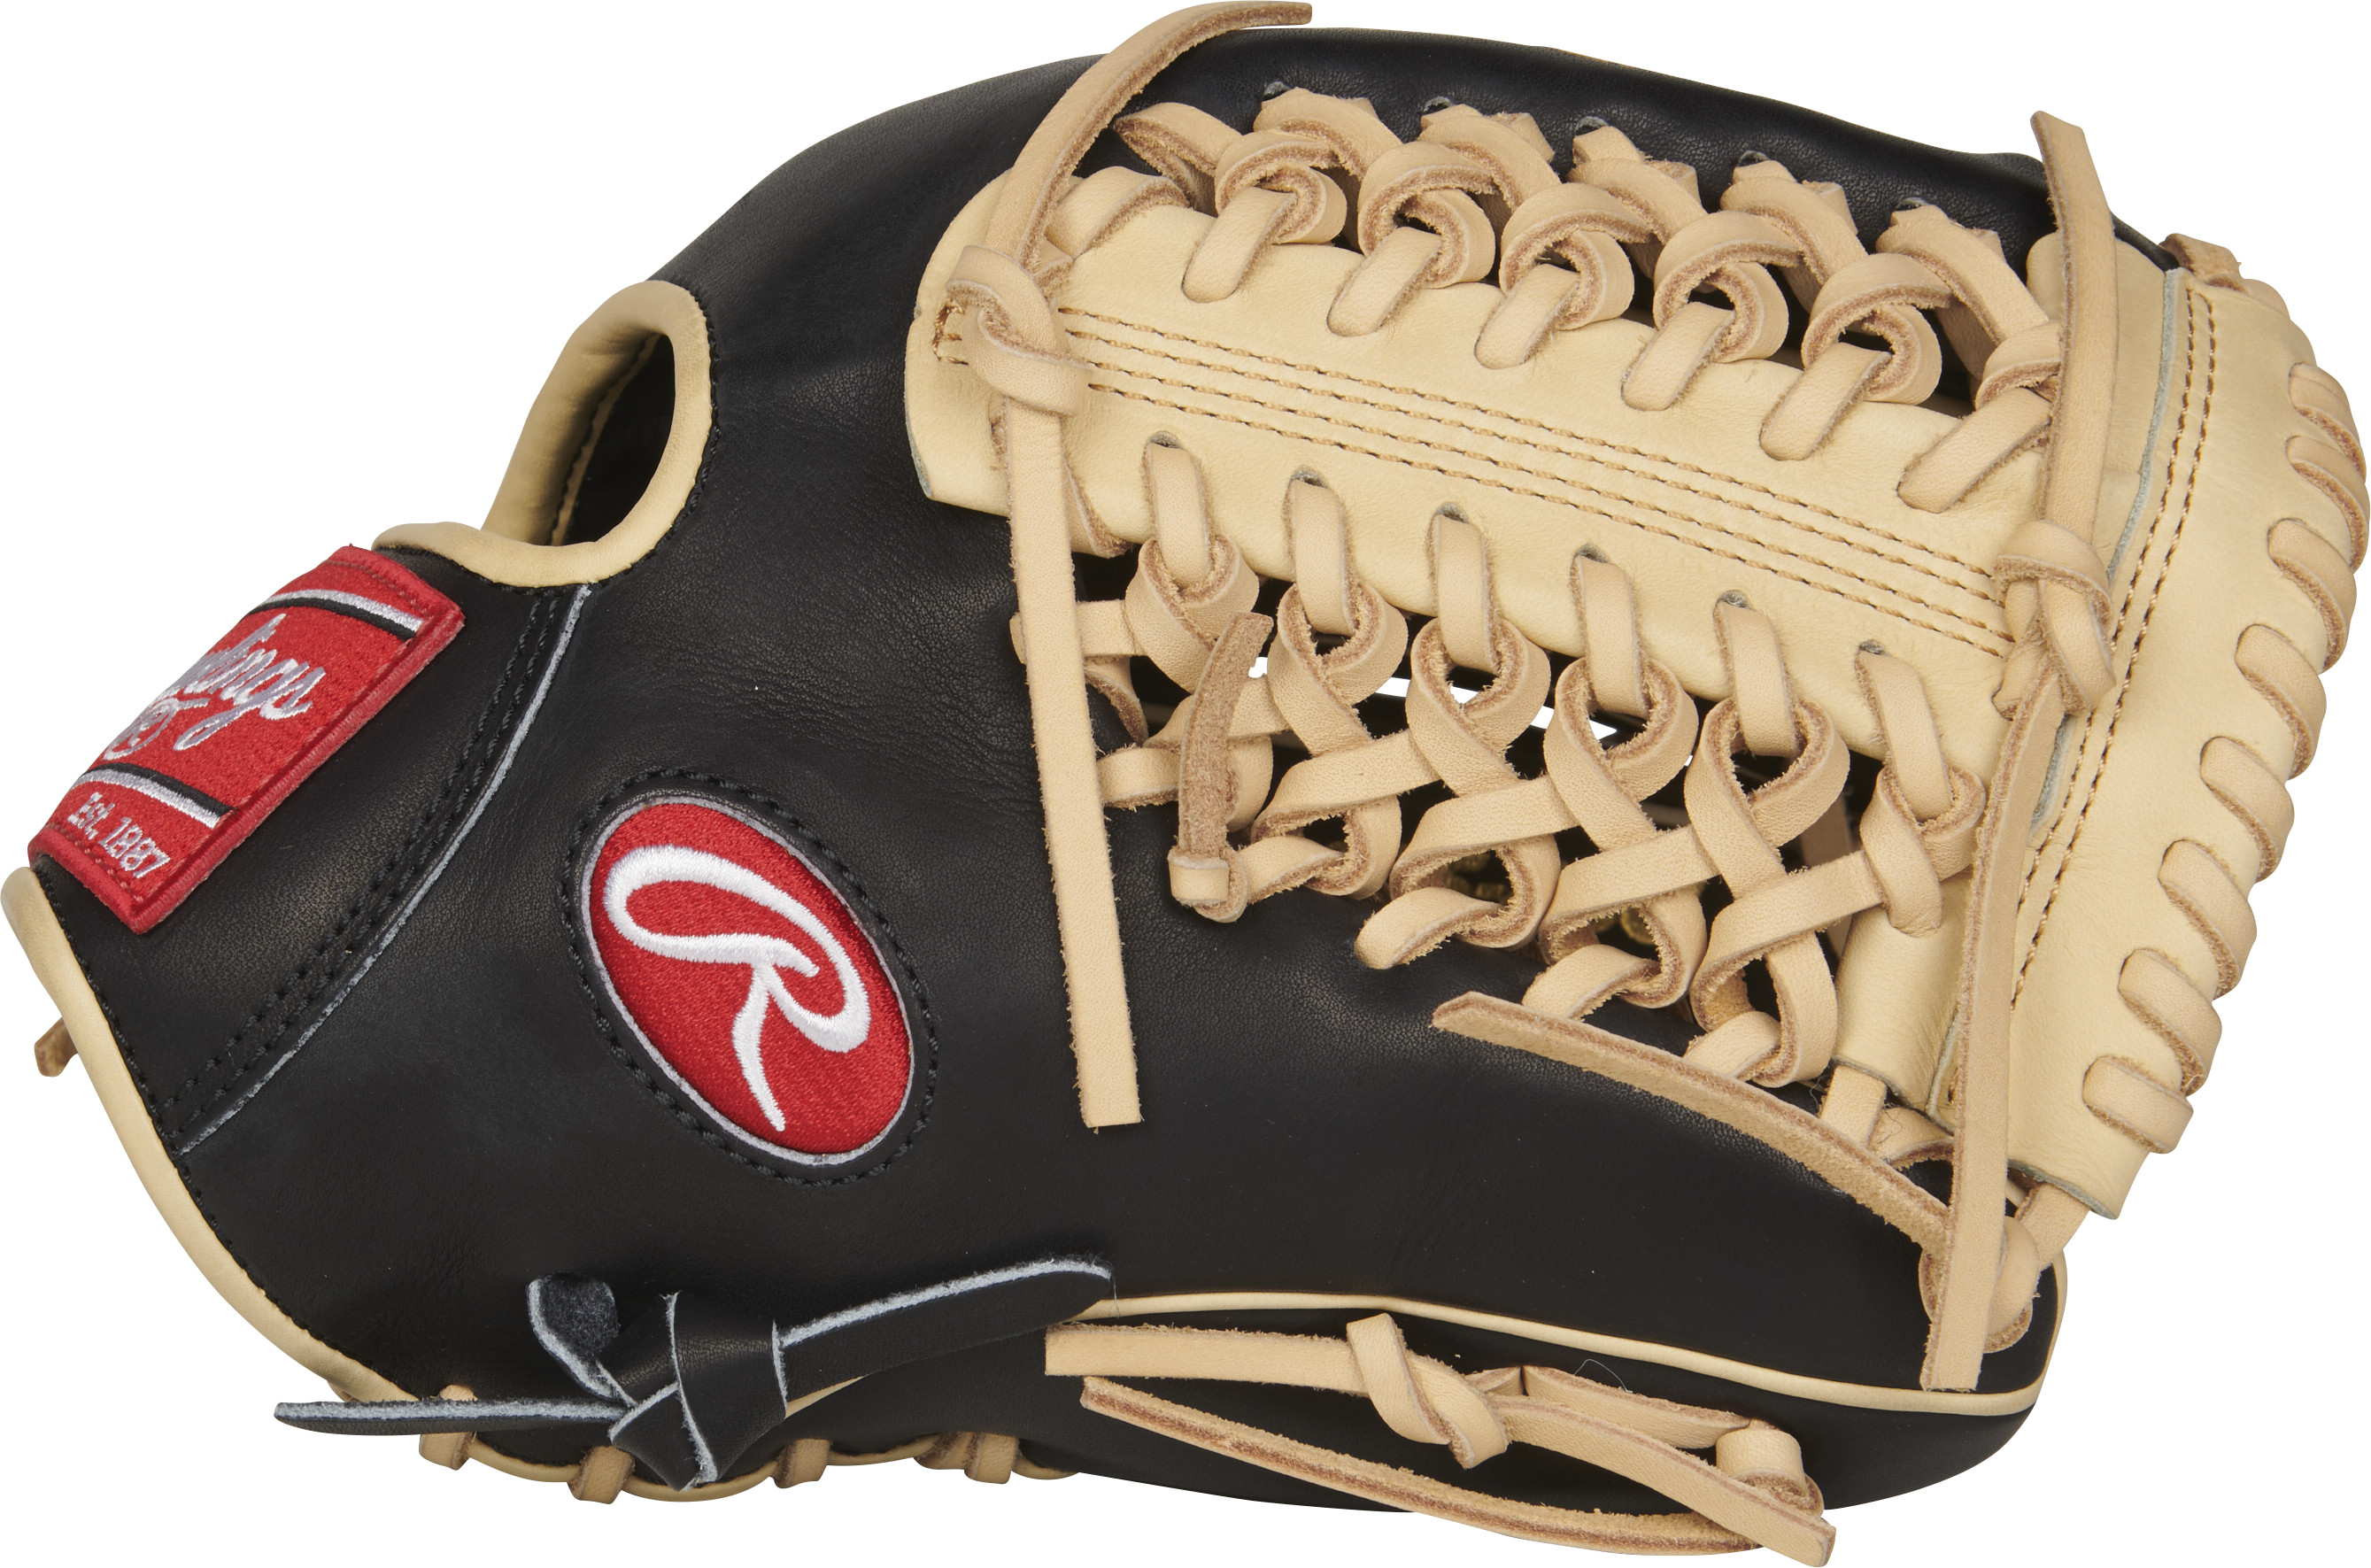 http://www.bestbatdeals.com/images/gloves/rawlings/PROR205-4BC-3.jpg